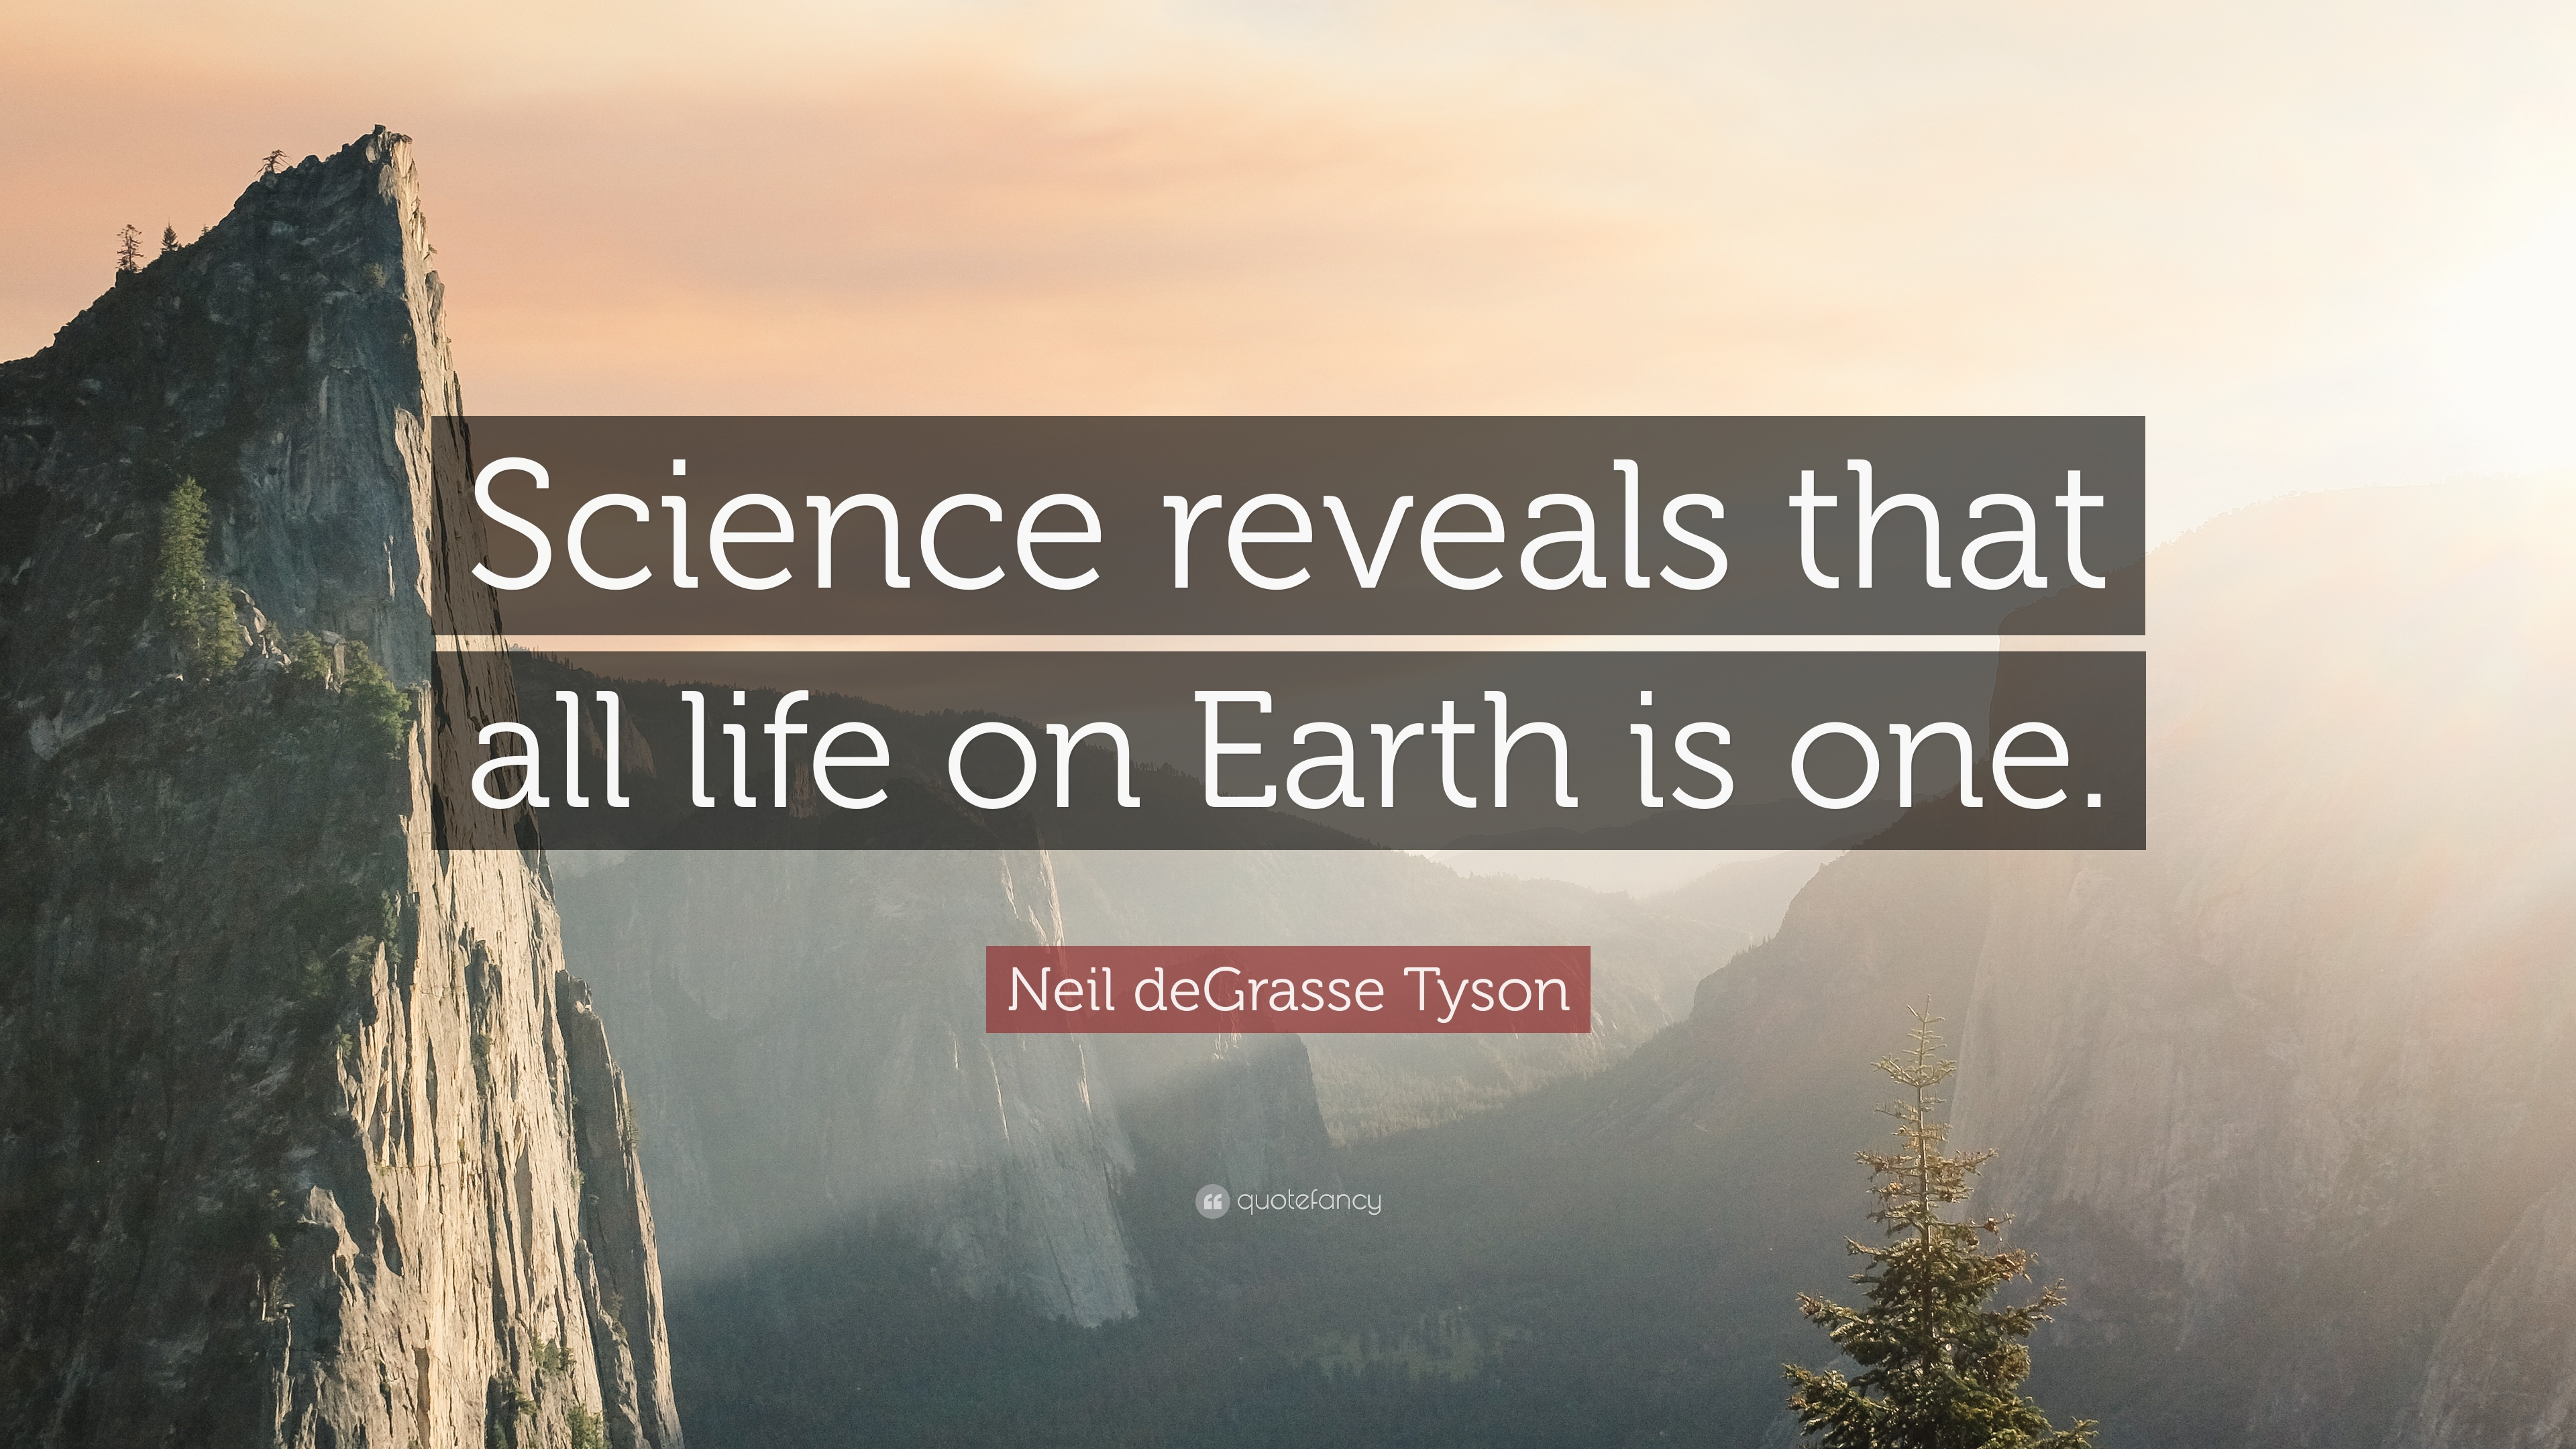 neil degrasse tyson quote science reveals that all life. Black Bedroom Furniture Sets. Home Design Ideas